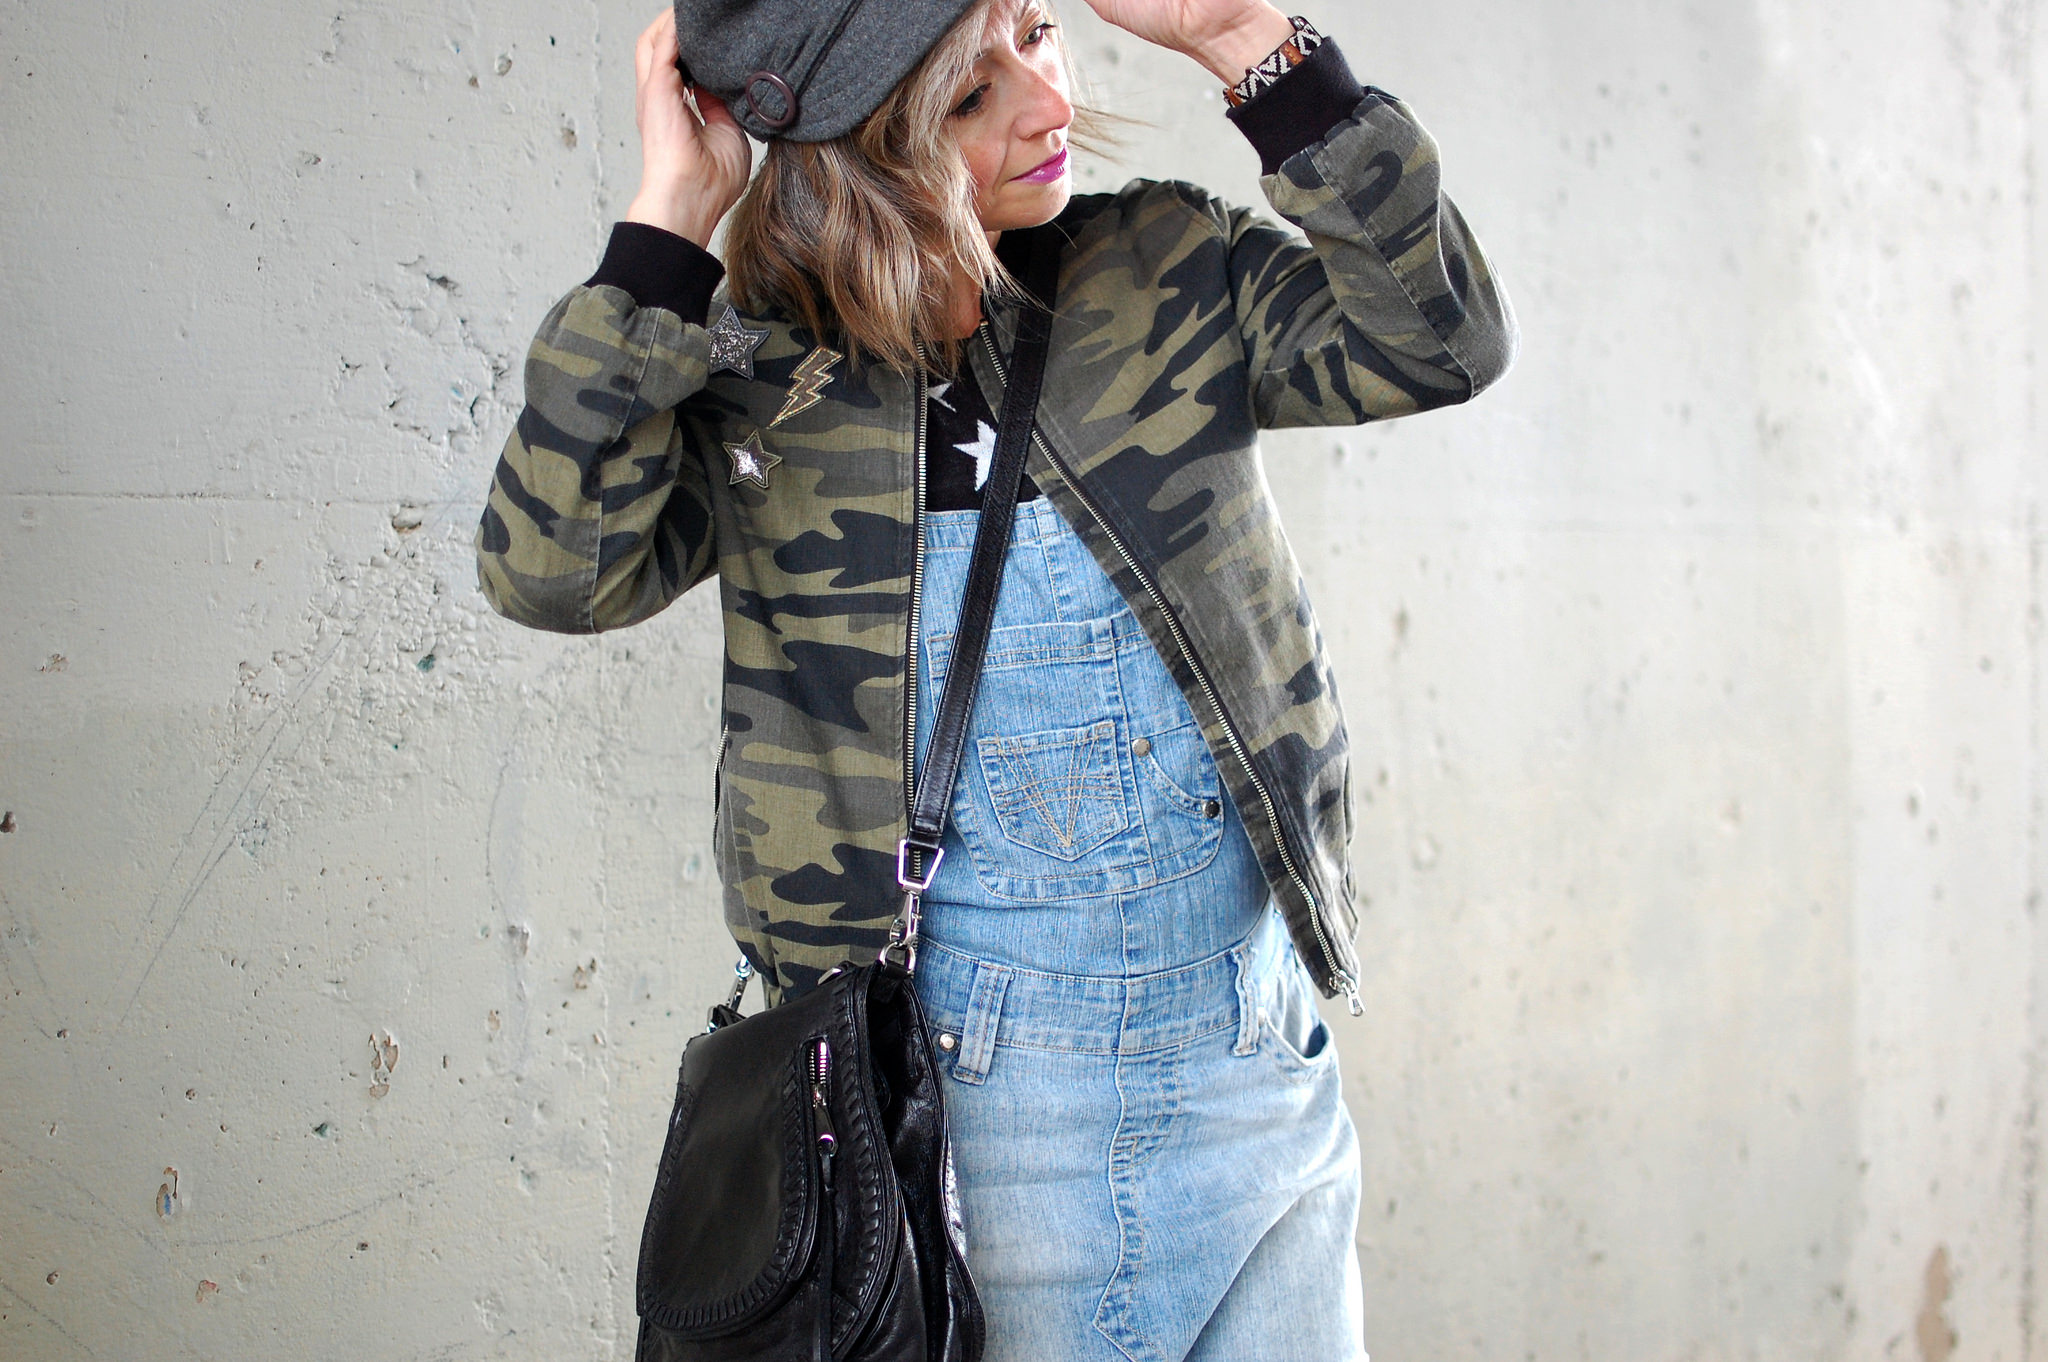 camo patch jacket overall dress daily outfit blog ootd whatiwore2day